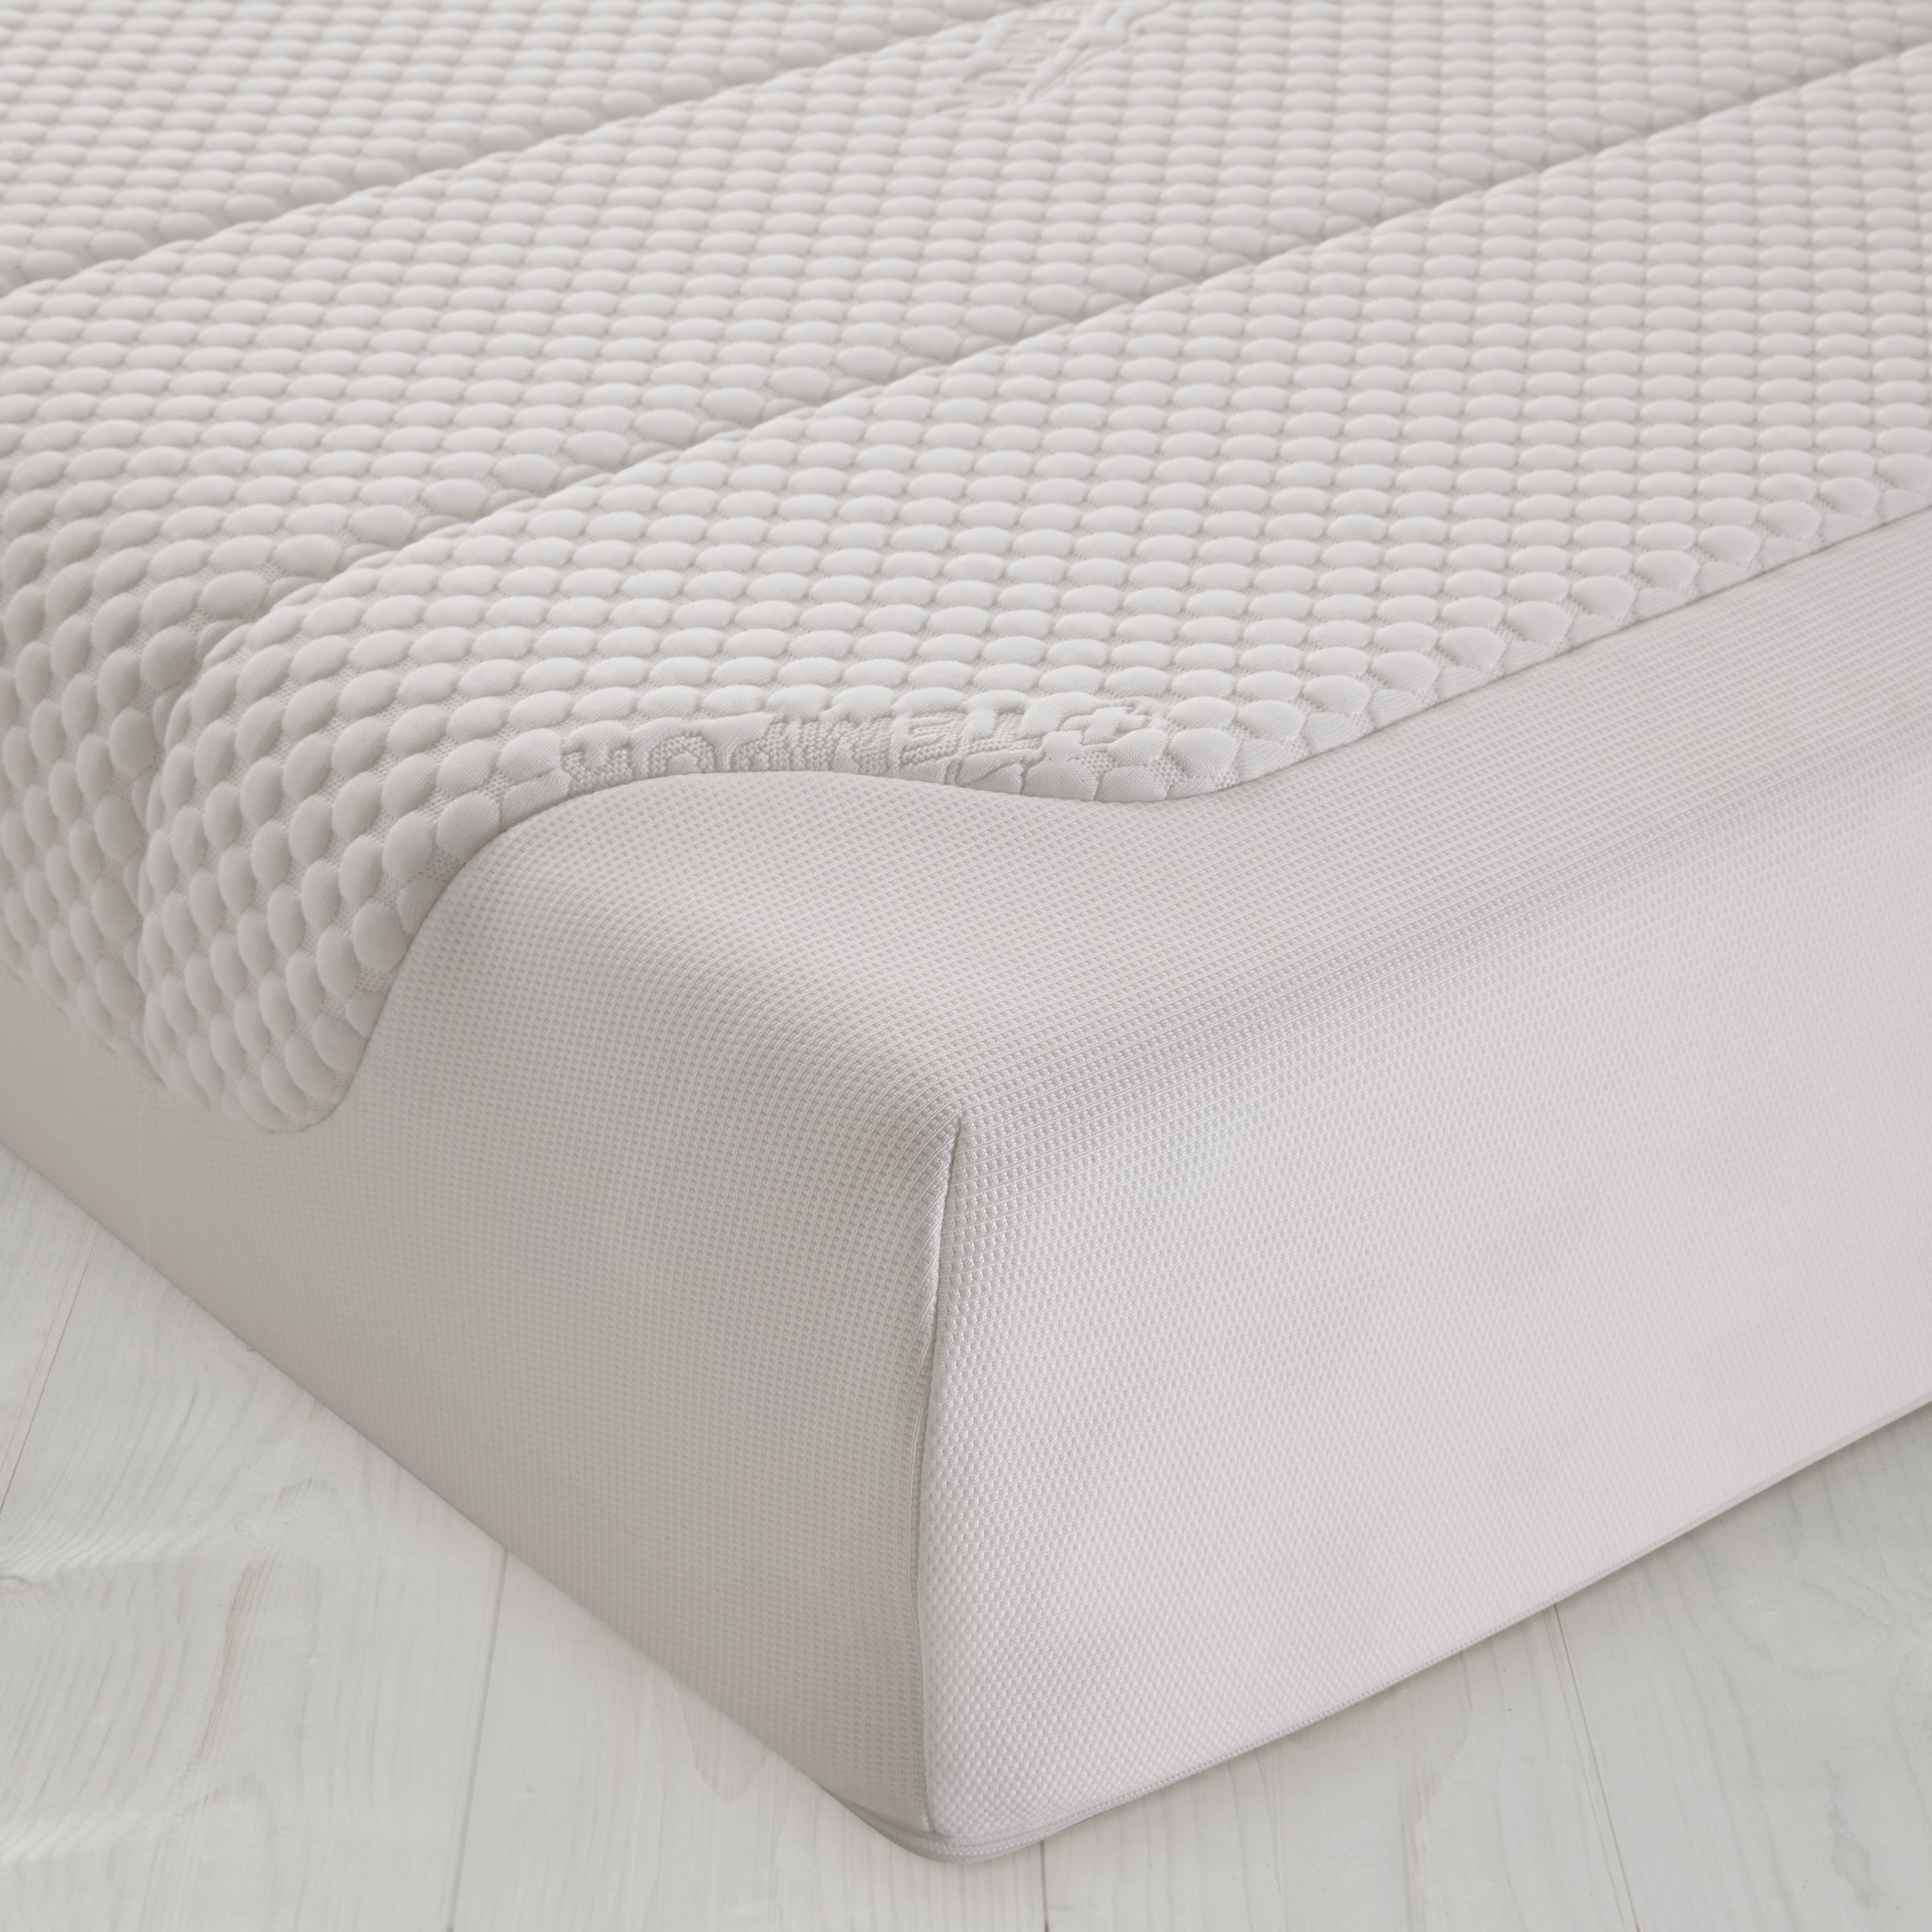 Tempur Cloud Deluxe 22 Mattress, Super Kingsize